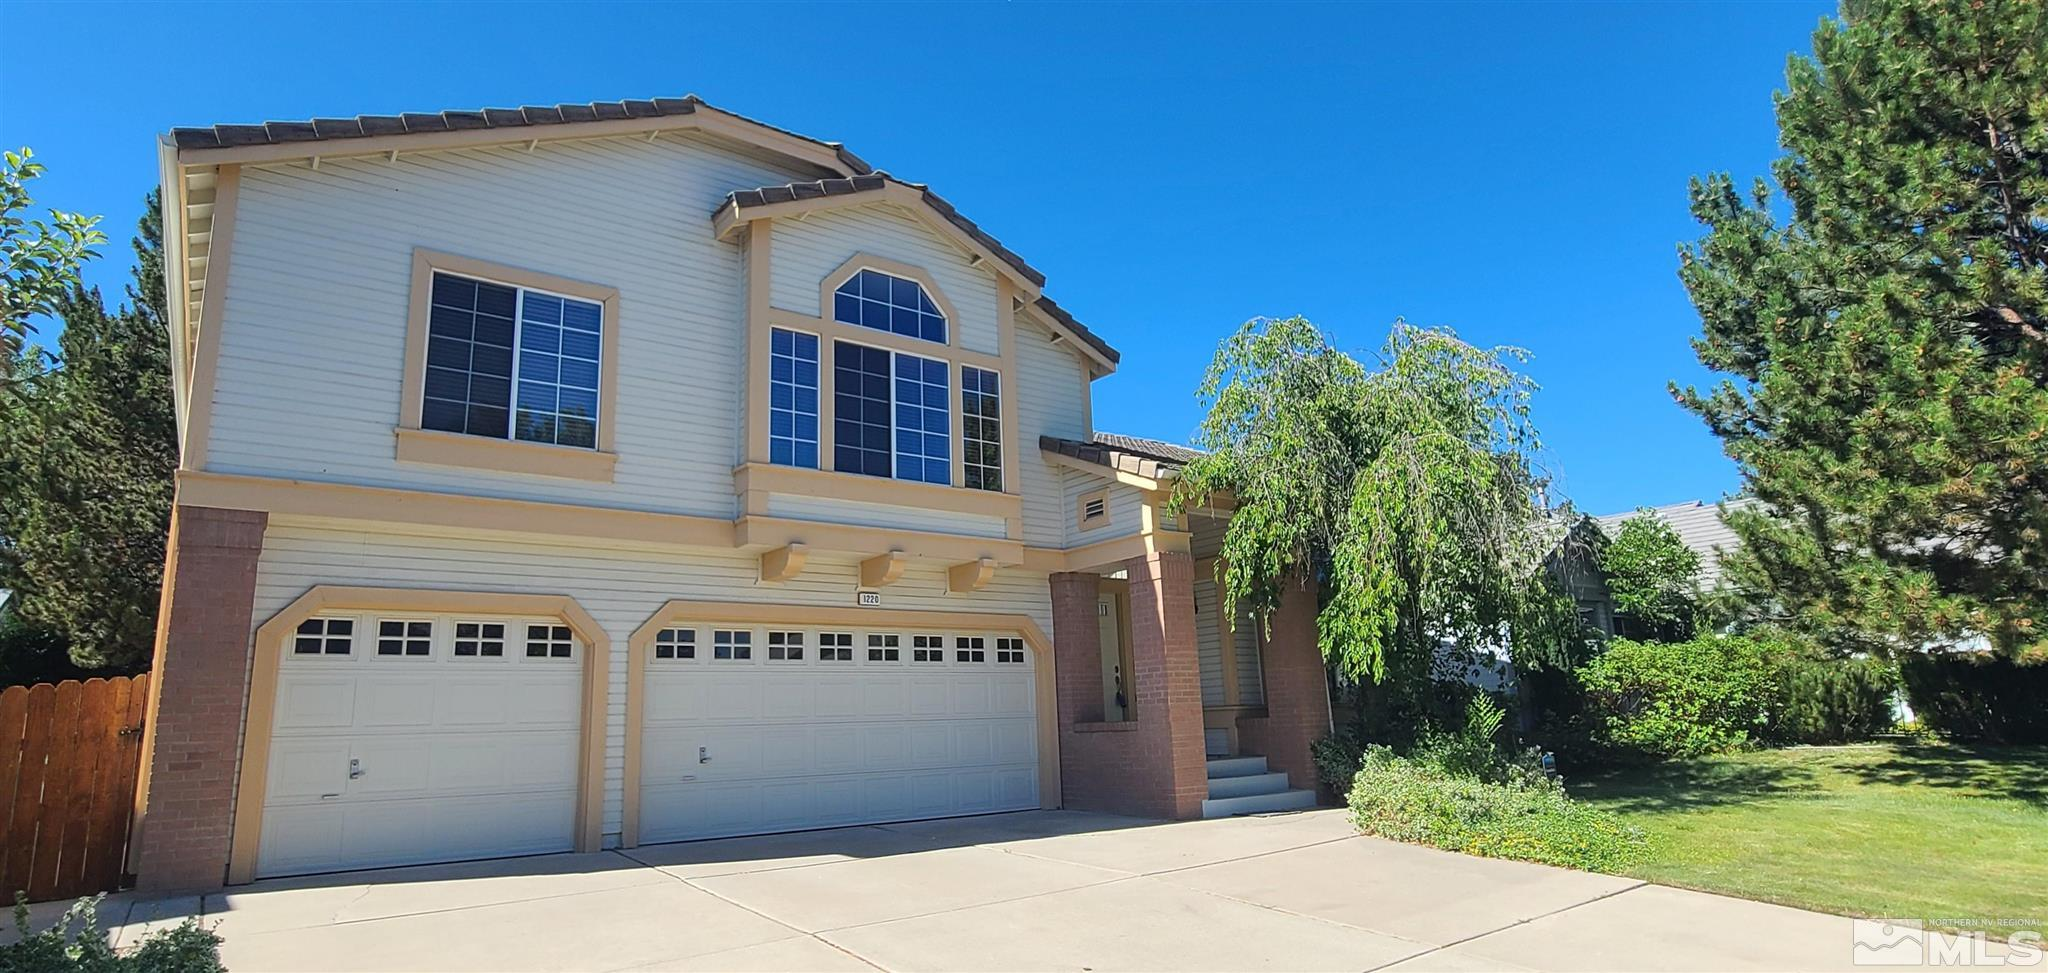 Image for 1220 Riverberry, Reno, NV 89509